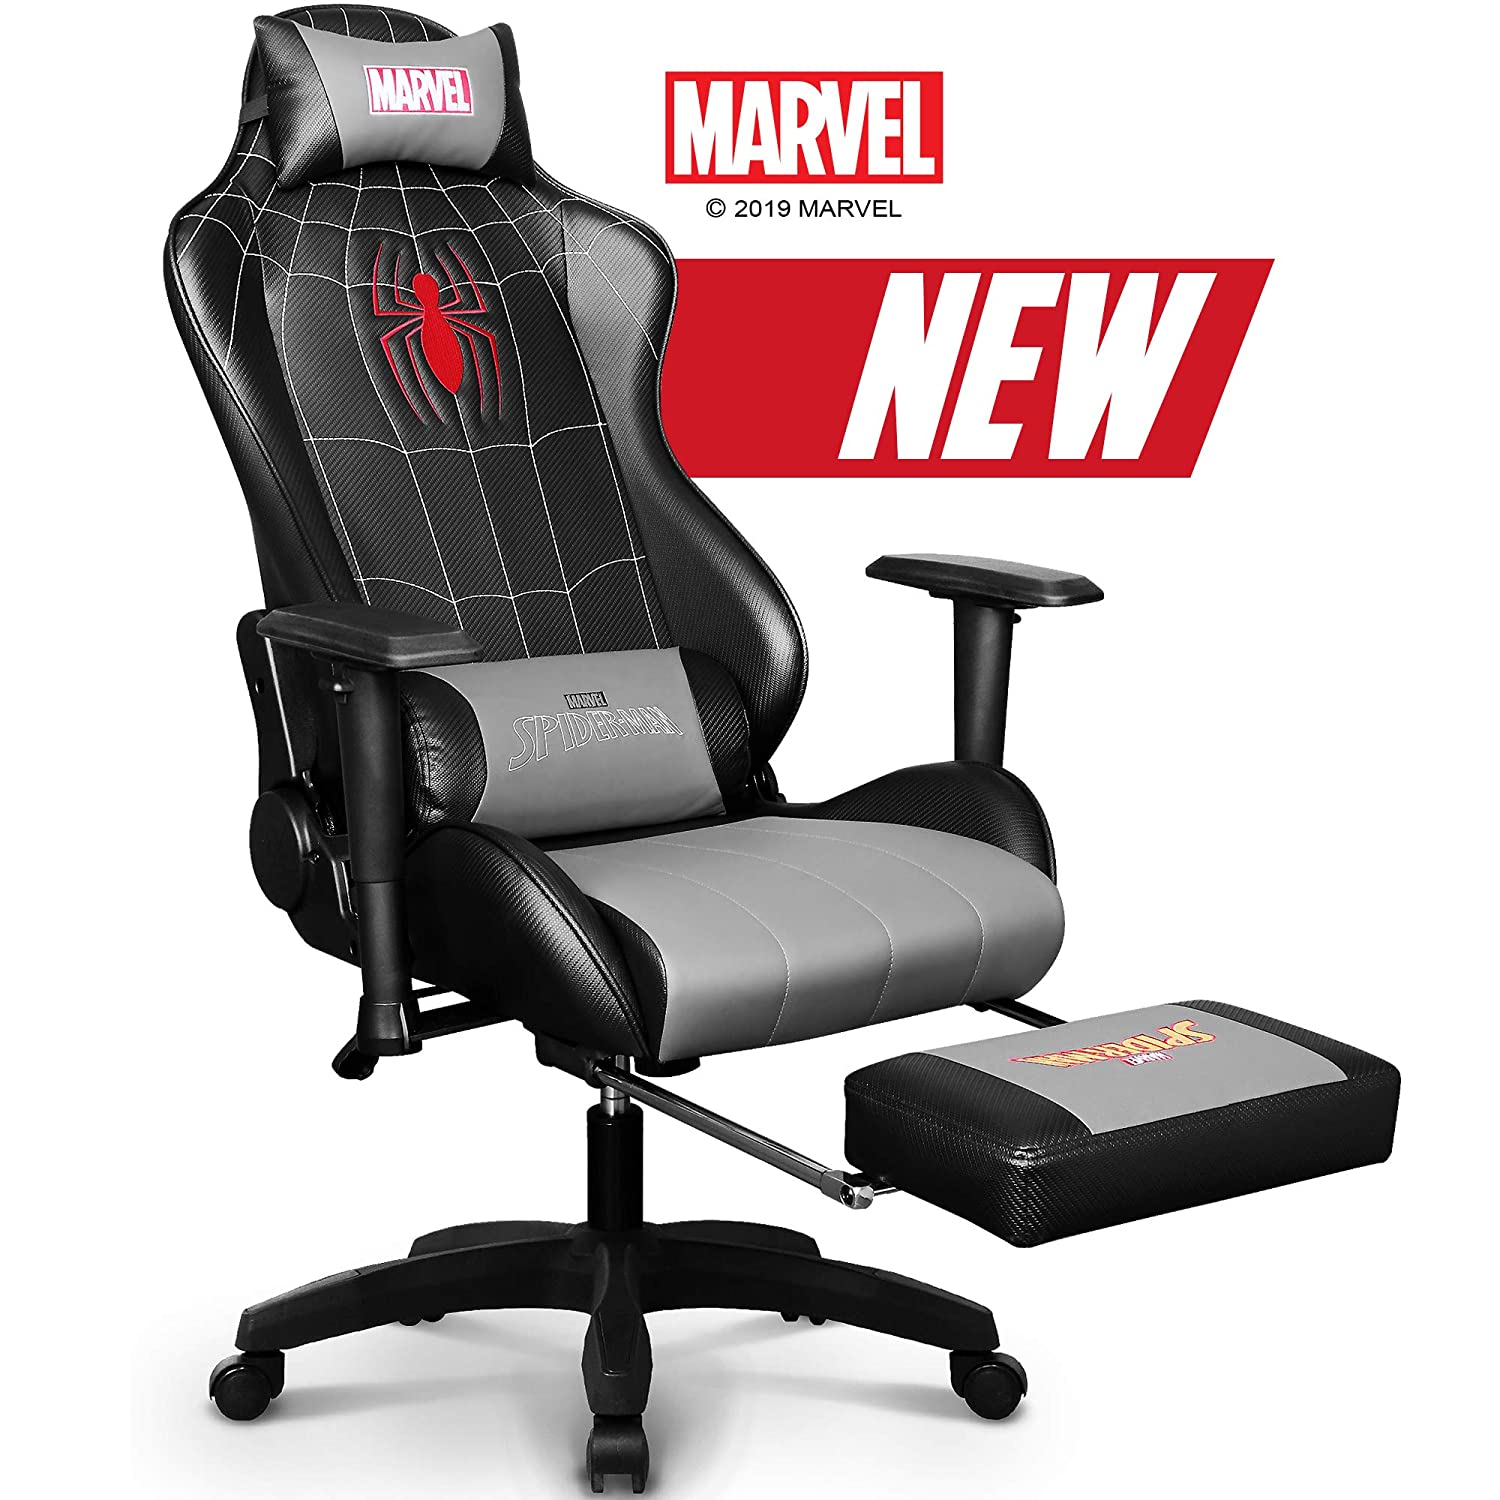 Marvel Avengers Gaming Chair Desk Office Computer Racing Chairs – Recliner Adults Gamer Ergonomic Game Footrest Kids Reclining High Back Support Racer Leather Rocker Foot Rest